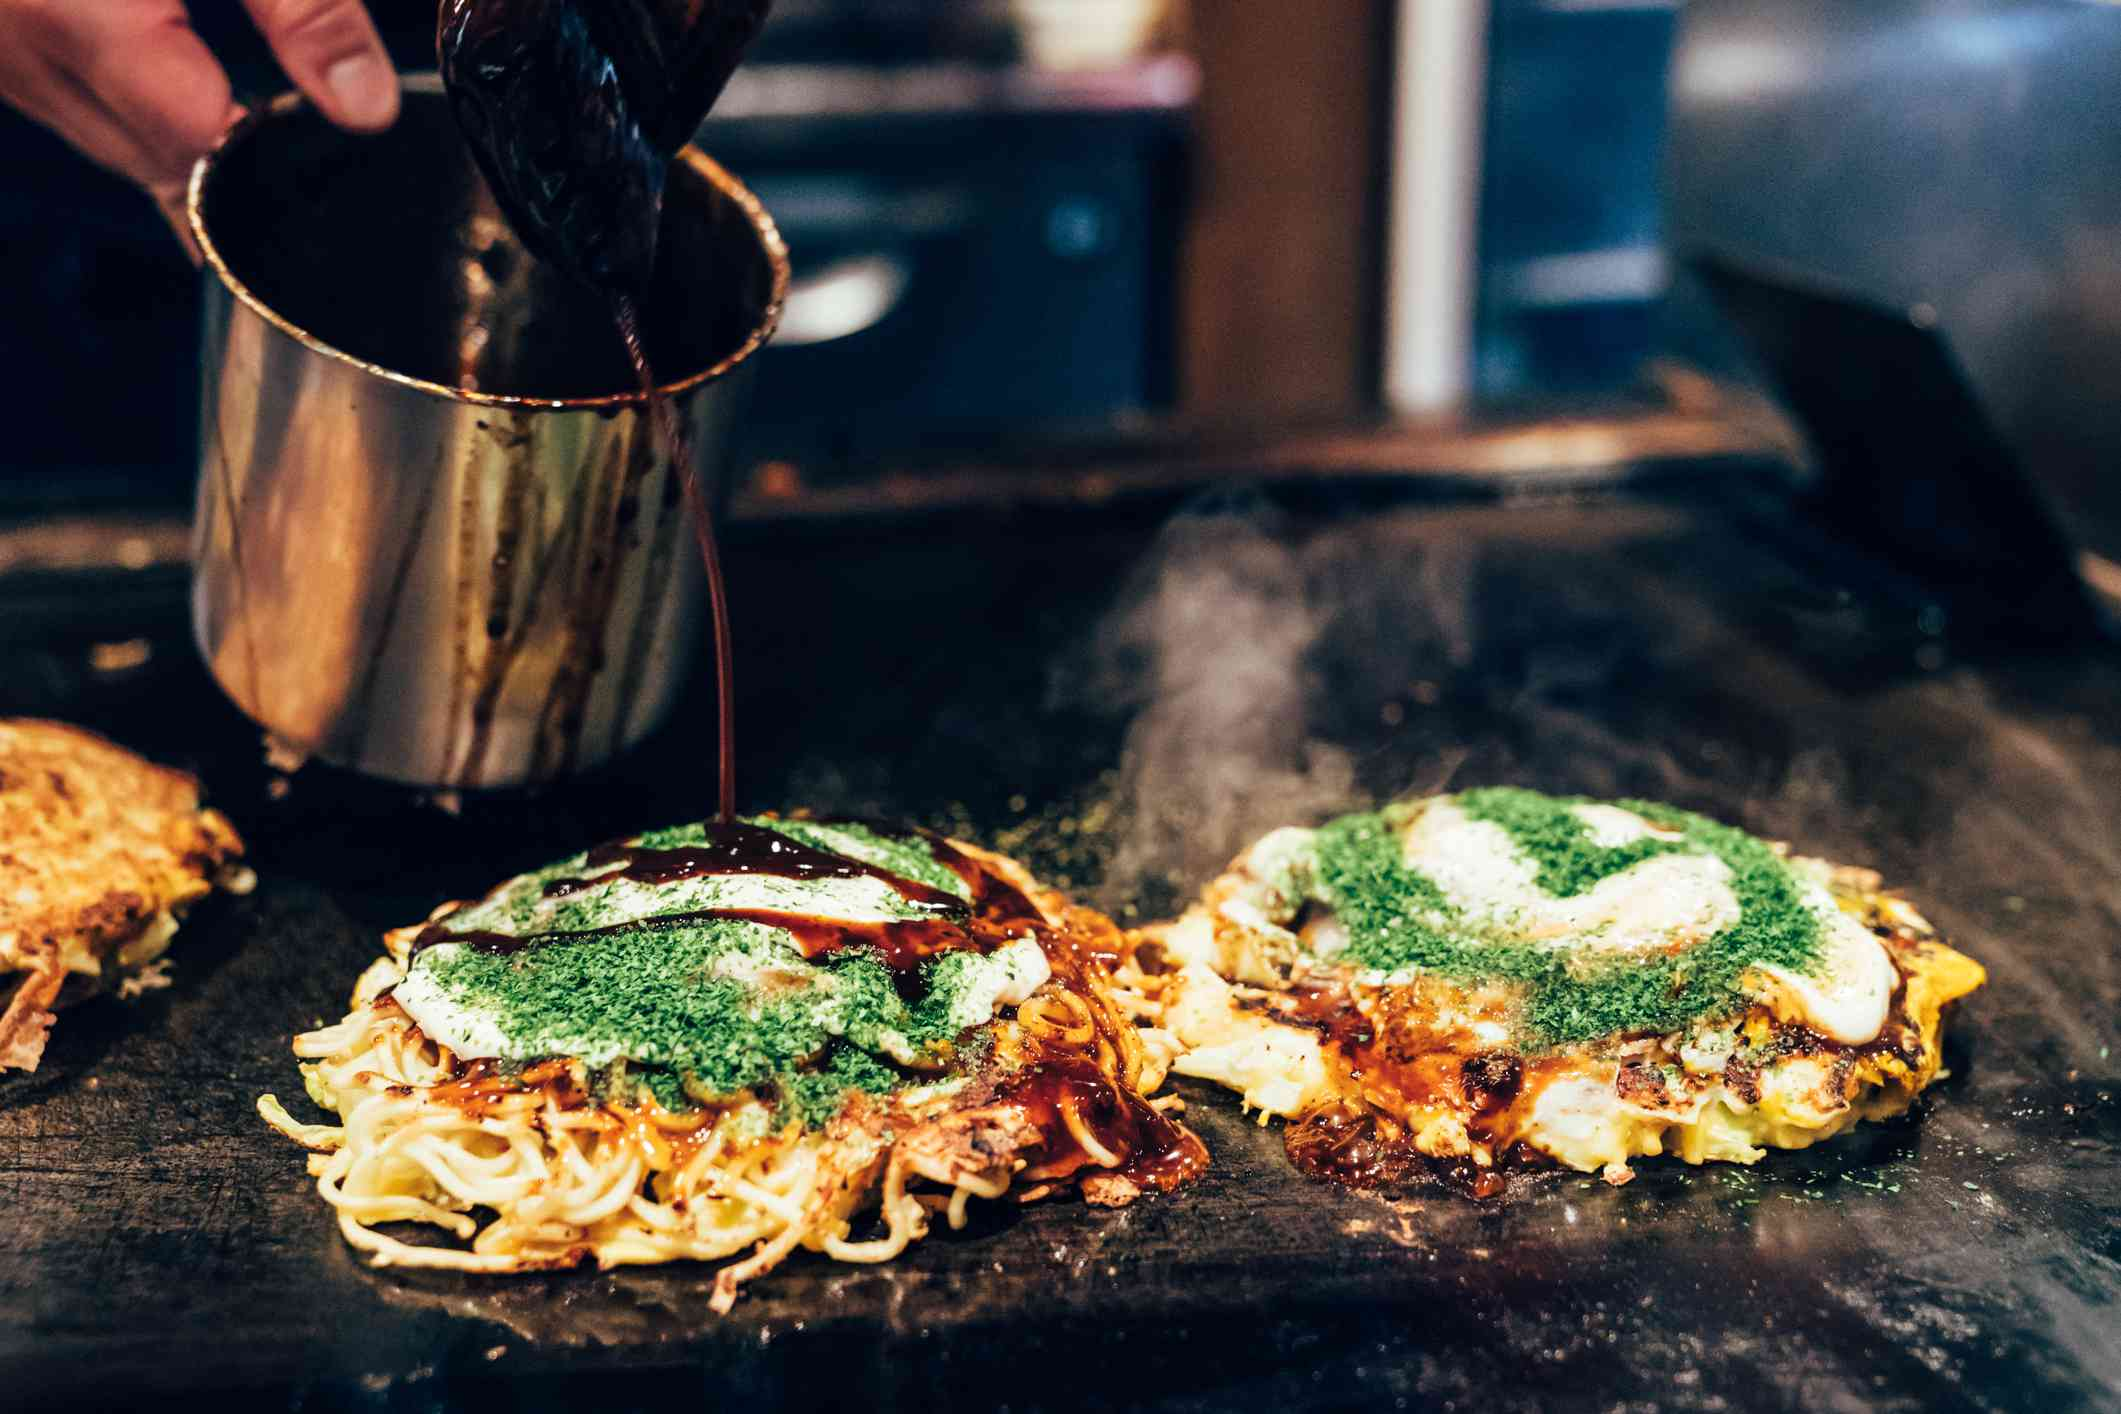 Two Okonomiyaki on a grill. One is getting brown sauce poured on it